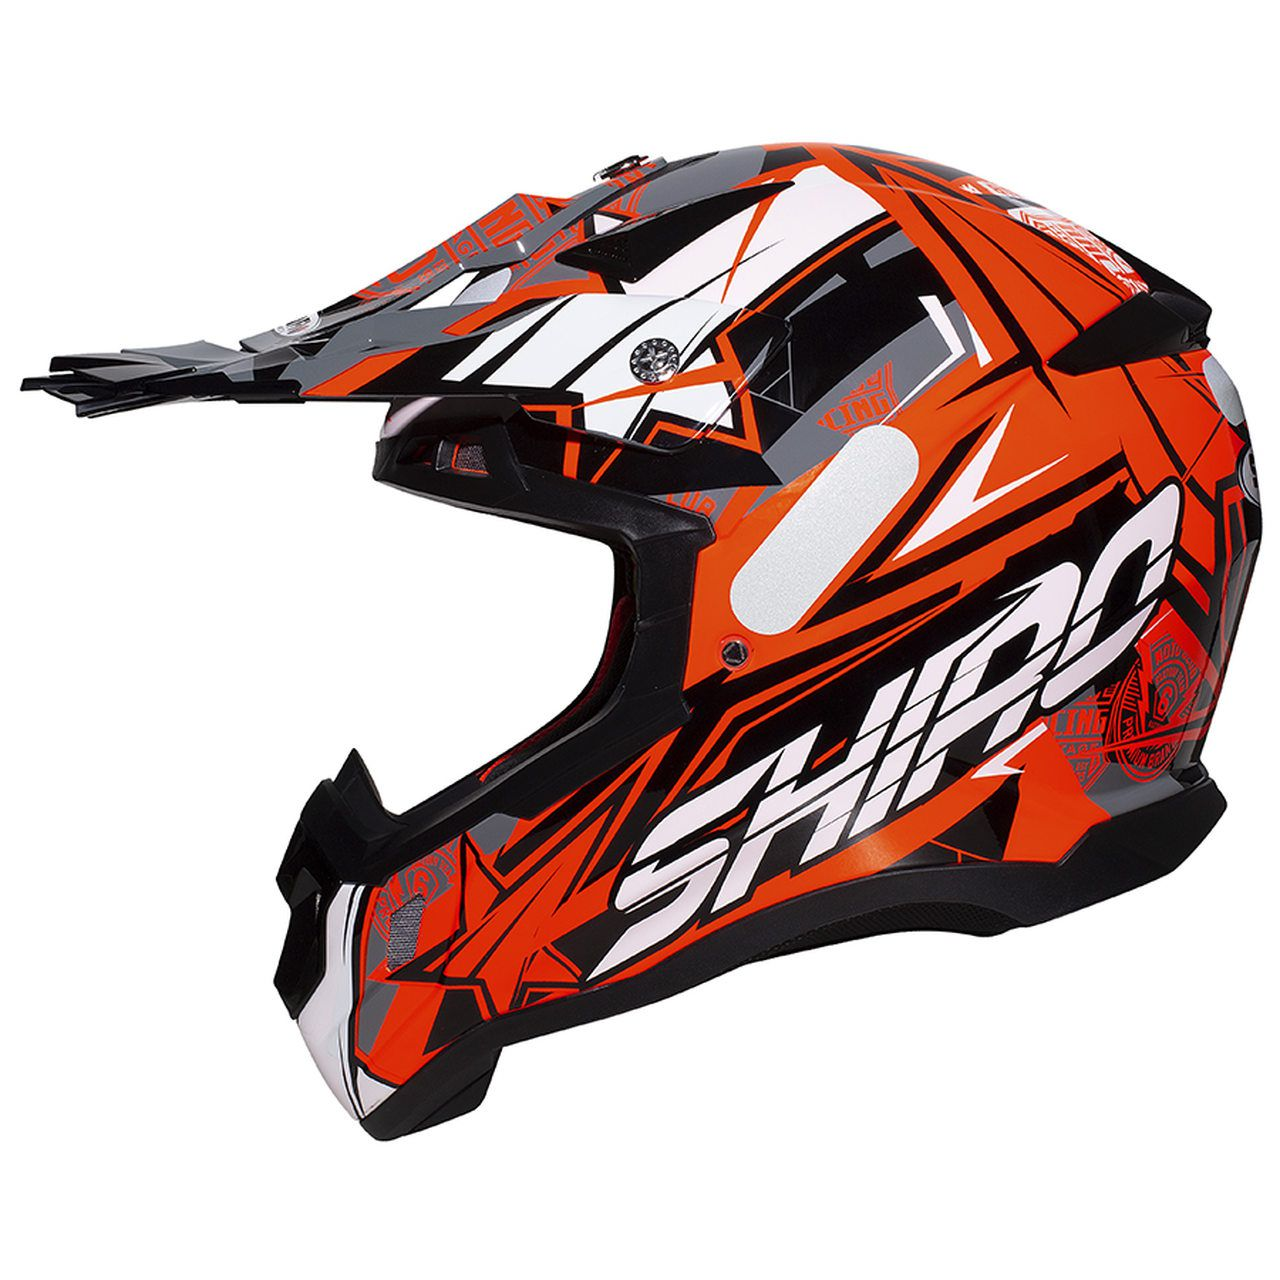 Capacete Shiro Motocross Off Road MX-917 Thunder III Laranja